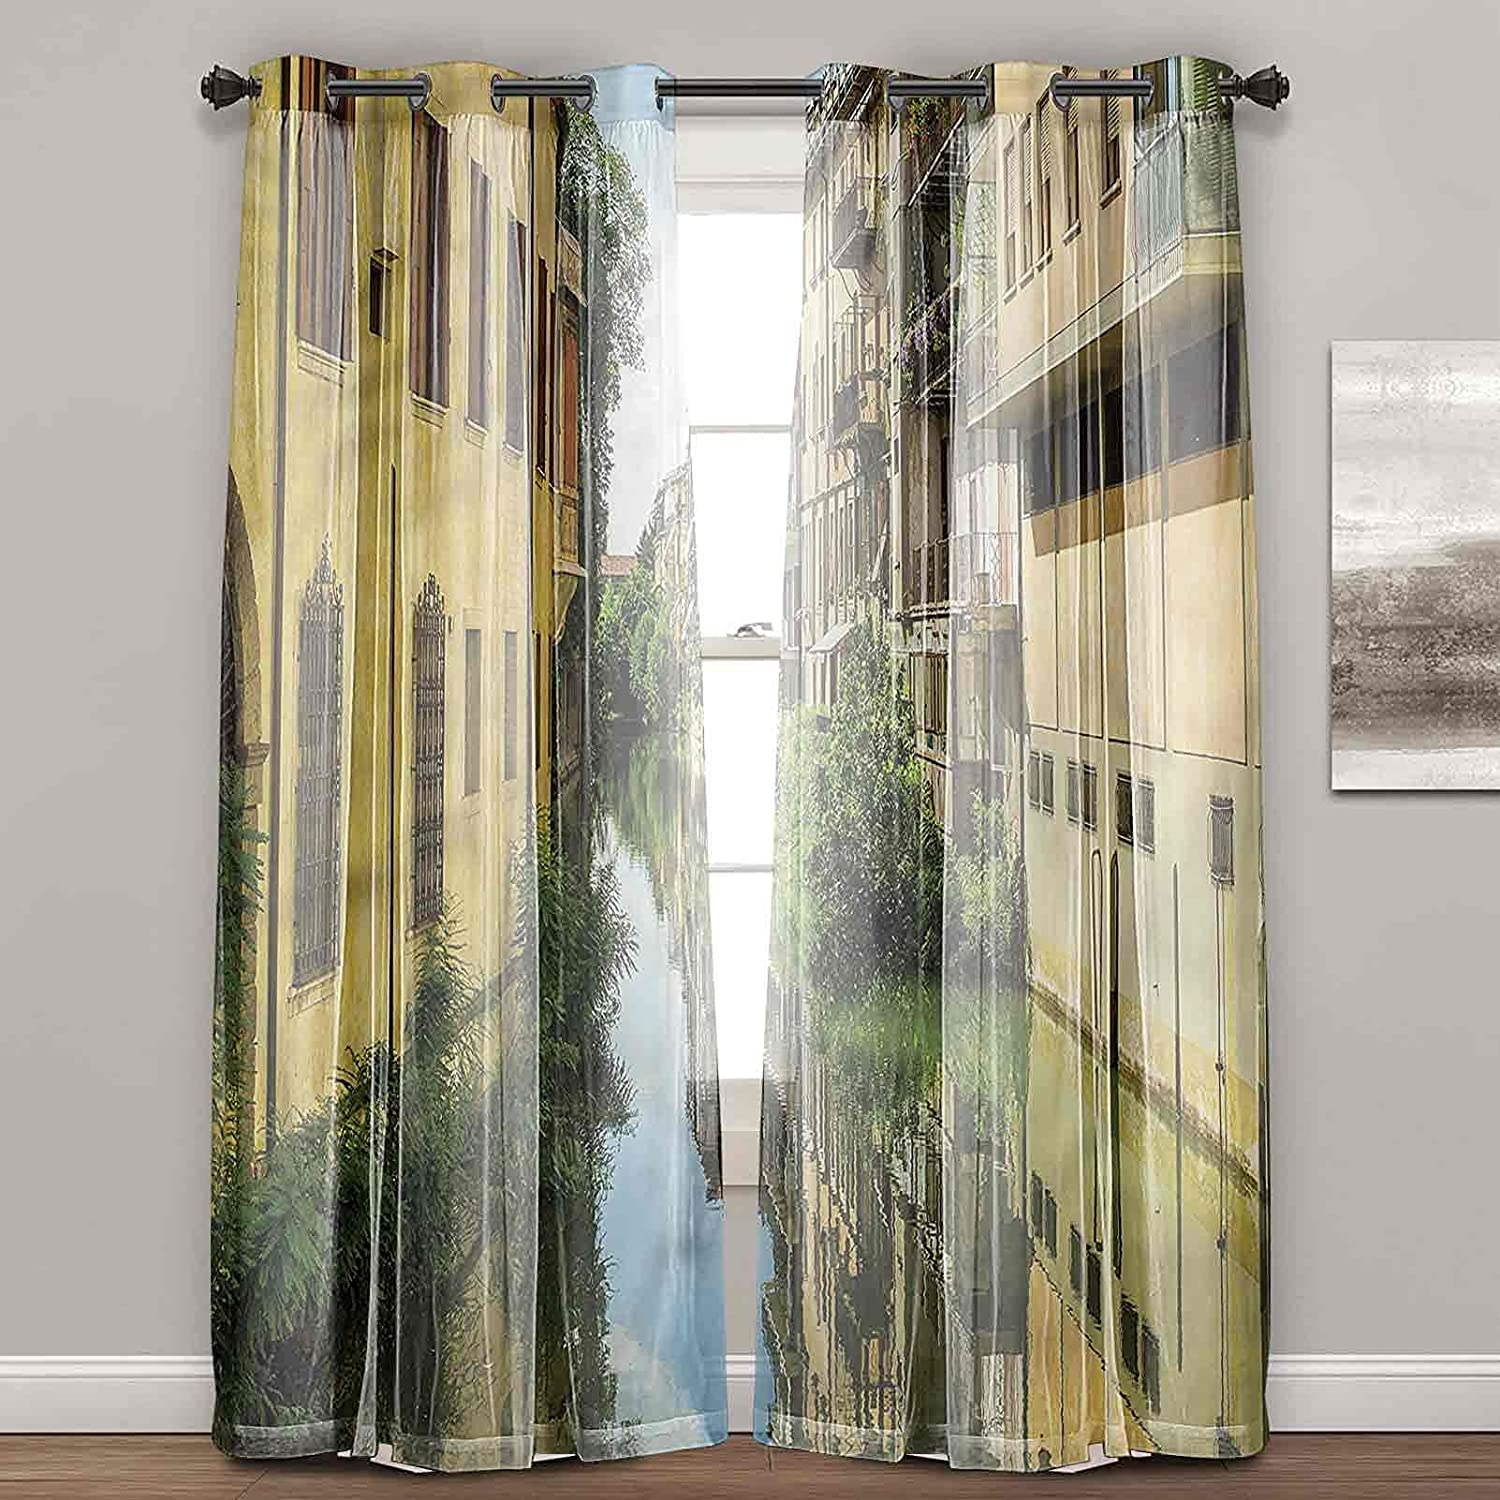 Window Limited time sale Curtains for Bedroom Cityscape L Residential Department store Canal City